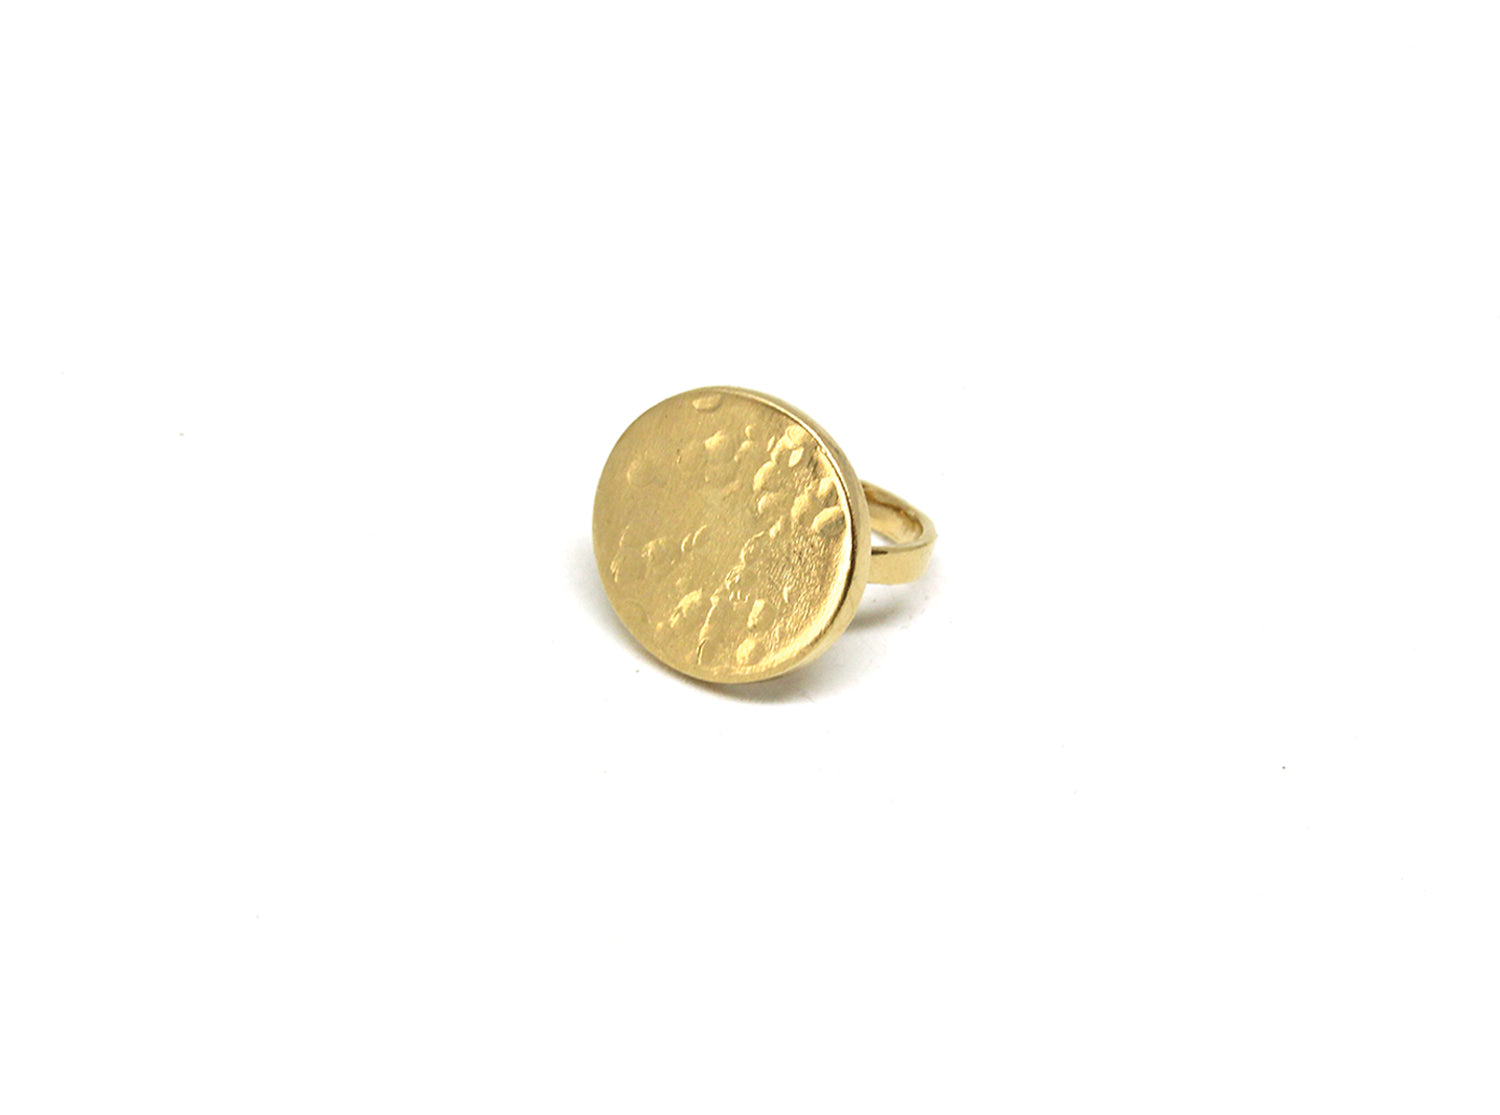 llayers jewelry ring mercury gold textured bague lunaire or minimale made in france